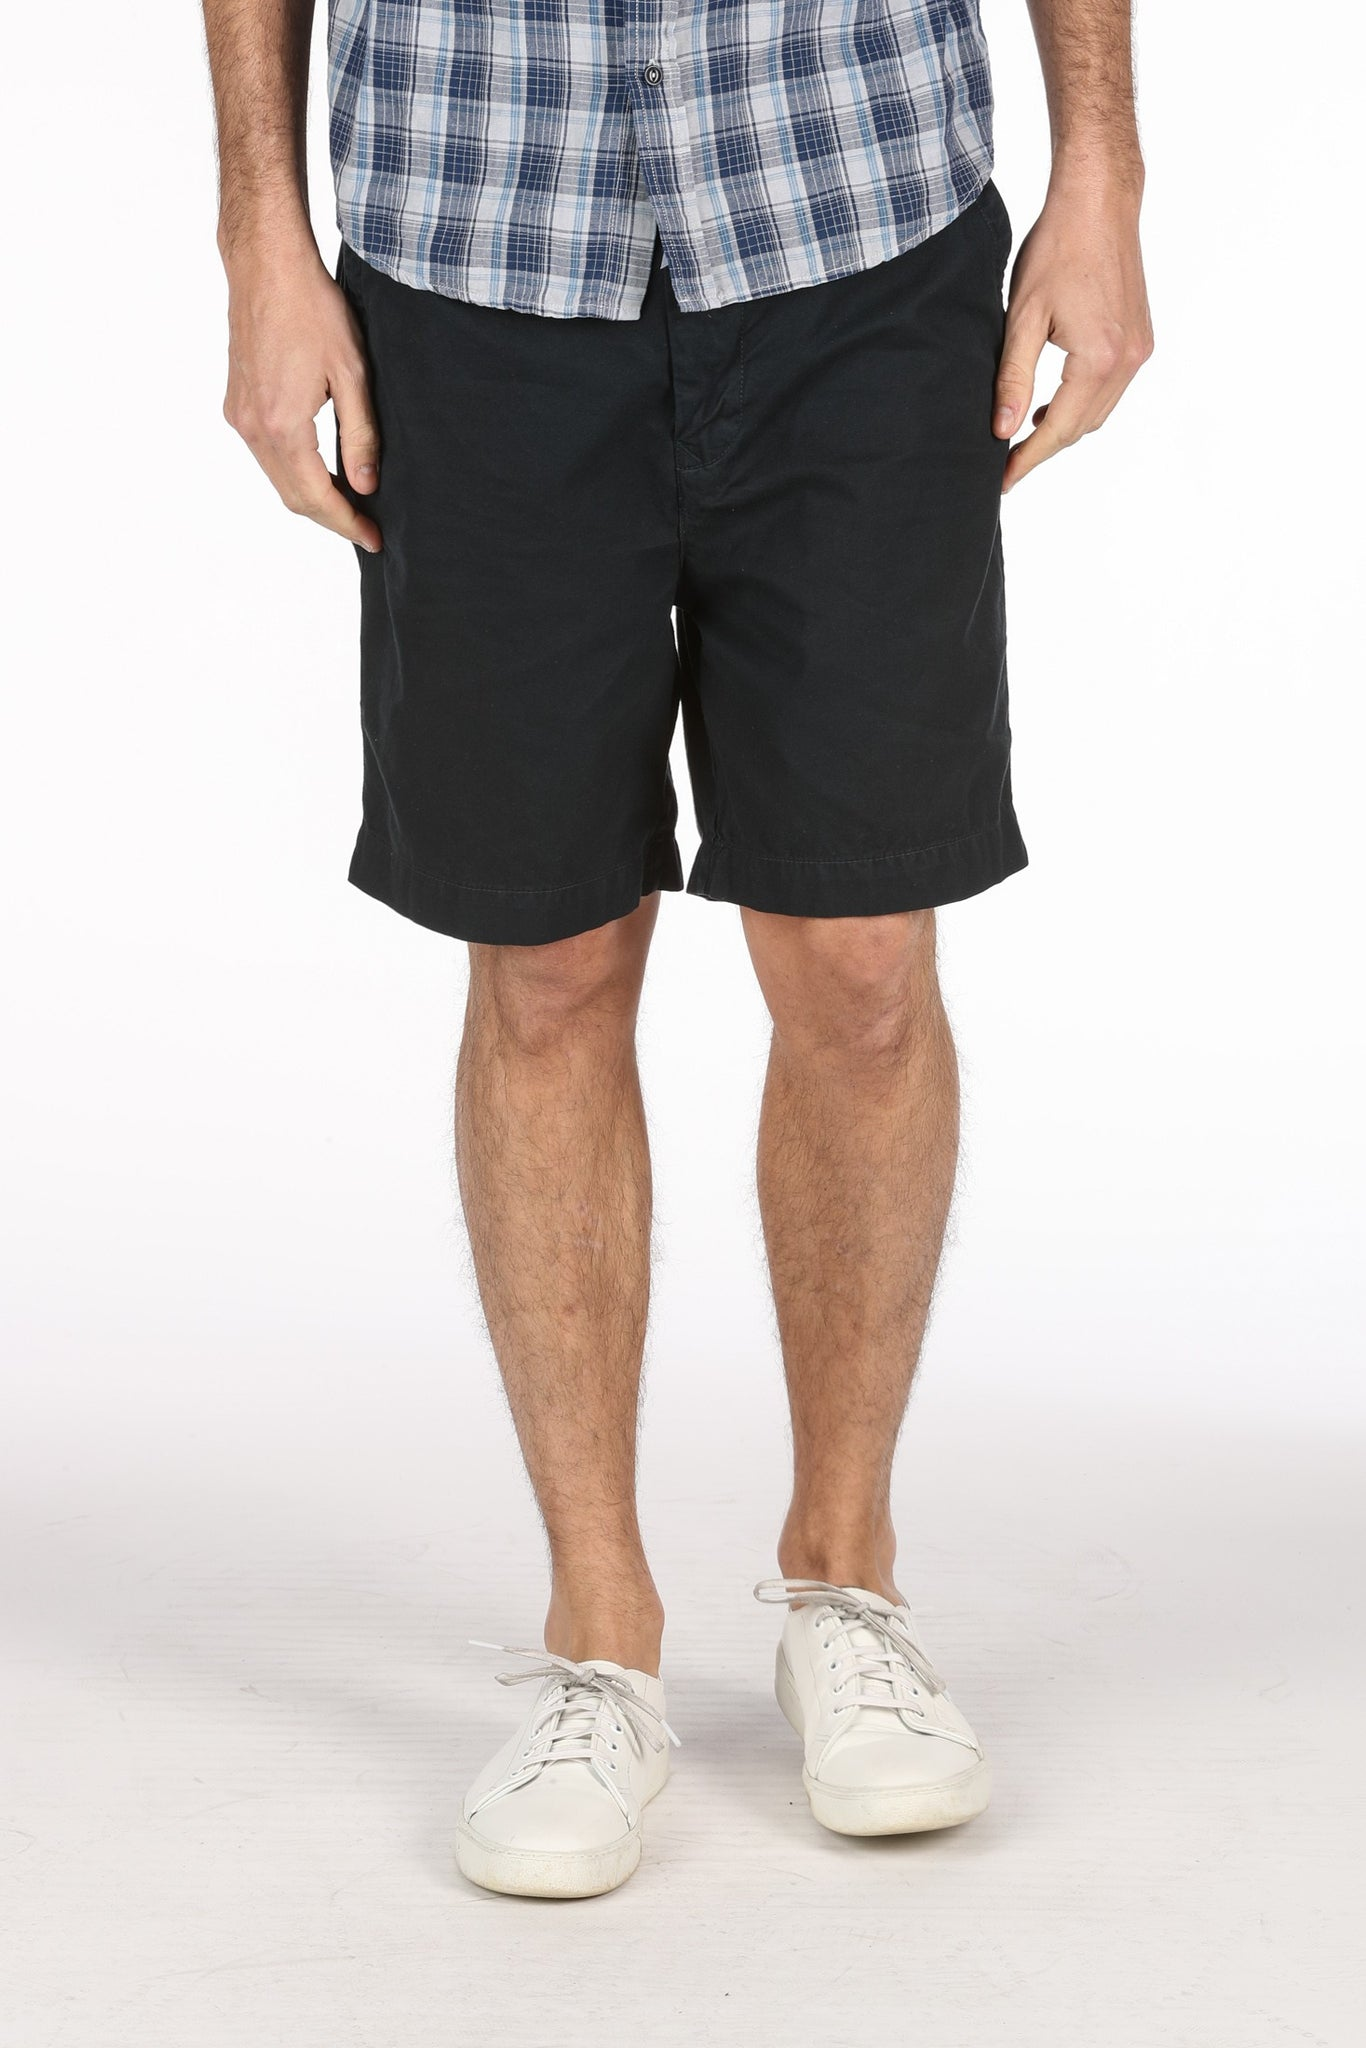 Save Khaki United Twill Weekend Short - Navy